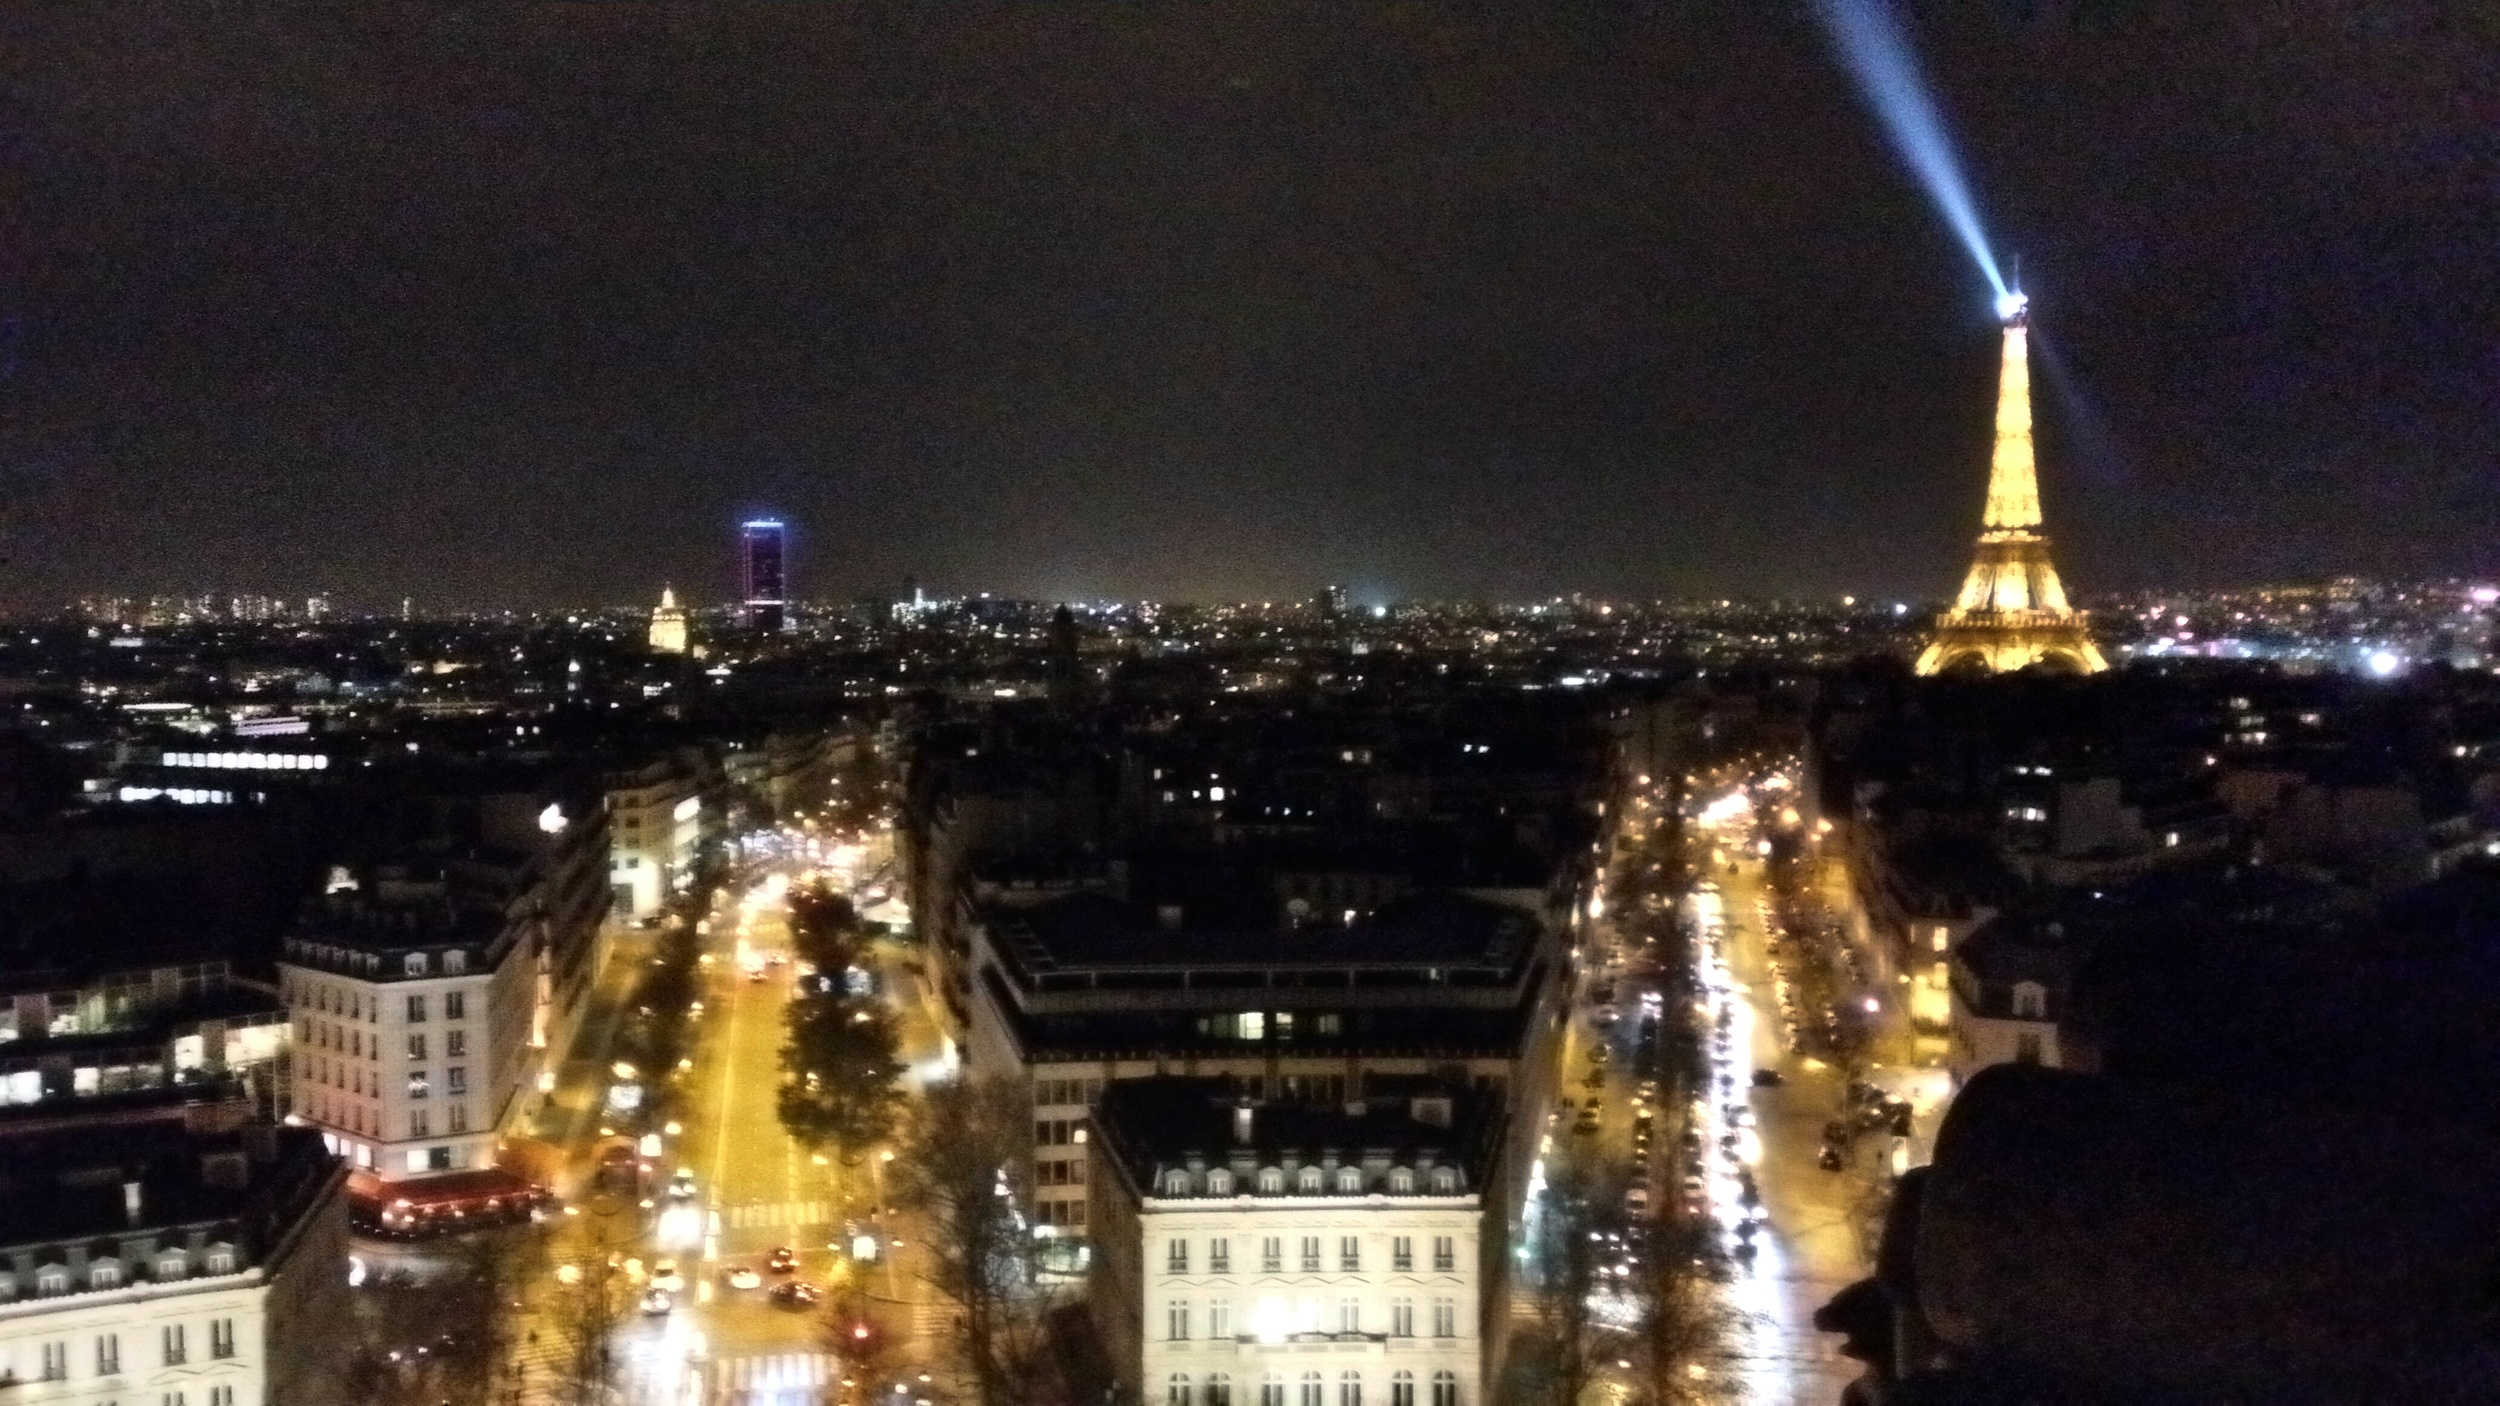 The view of the City of Lights from the top of the Arche de Triomphe.